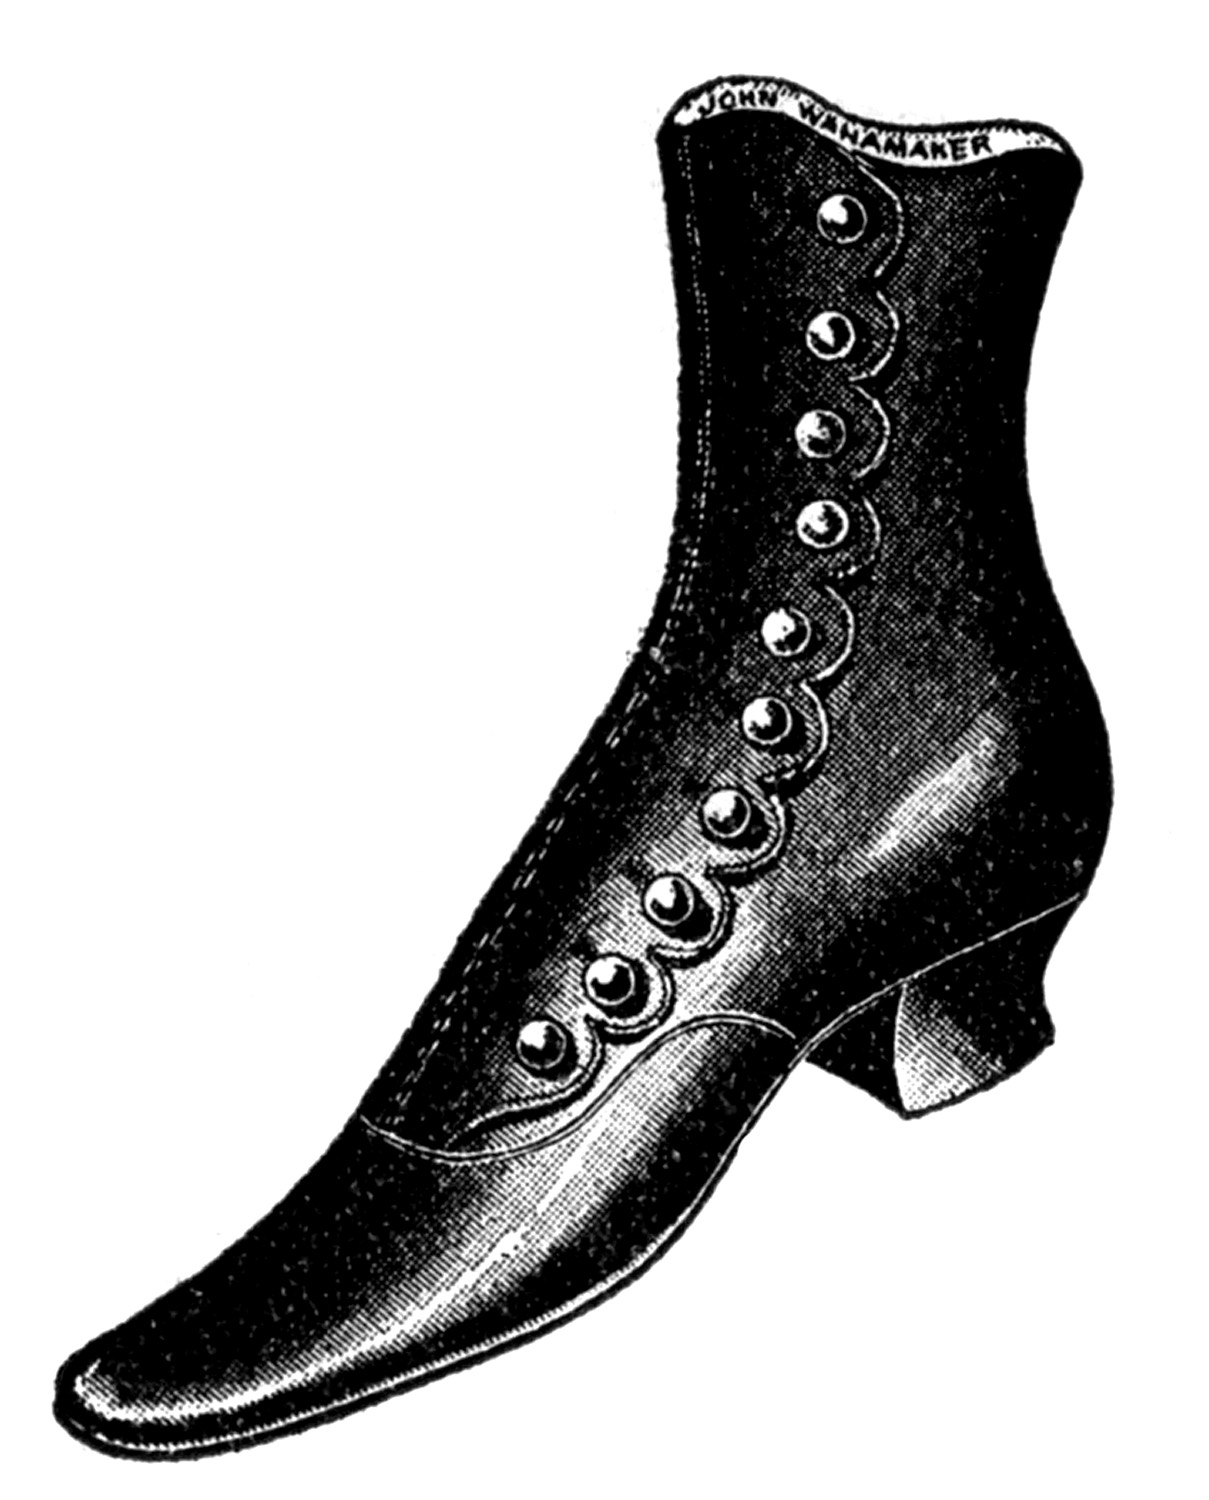 Free Victorian Boot Cliparts, Download Free Clip Art, Free.